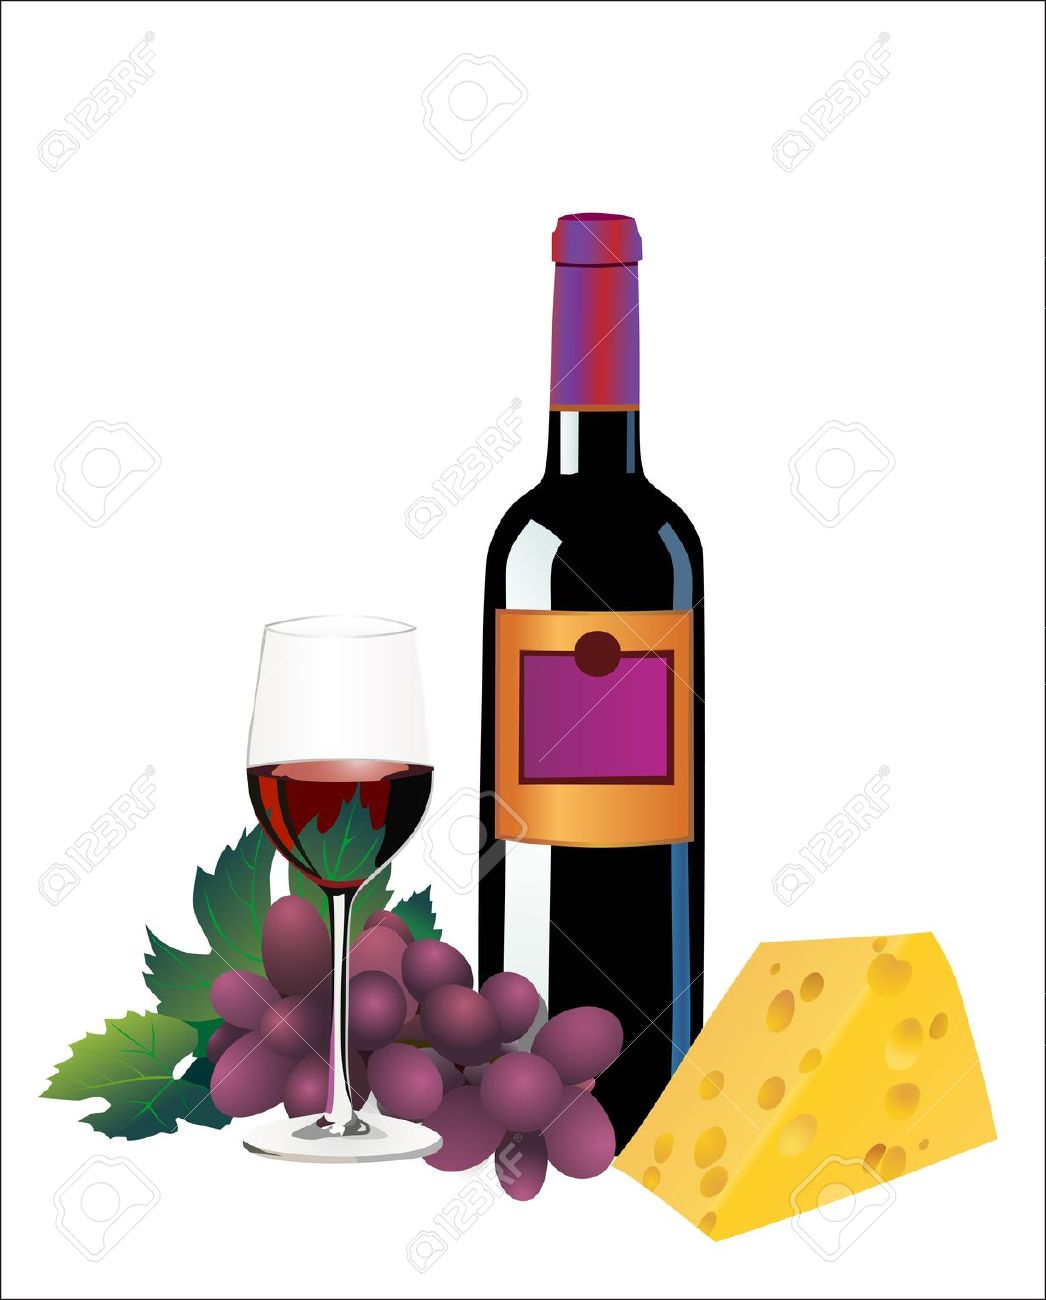 hight resolution of 26 wine and cheese party free clip art